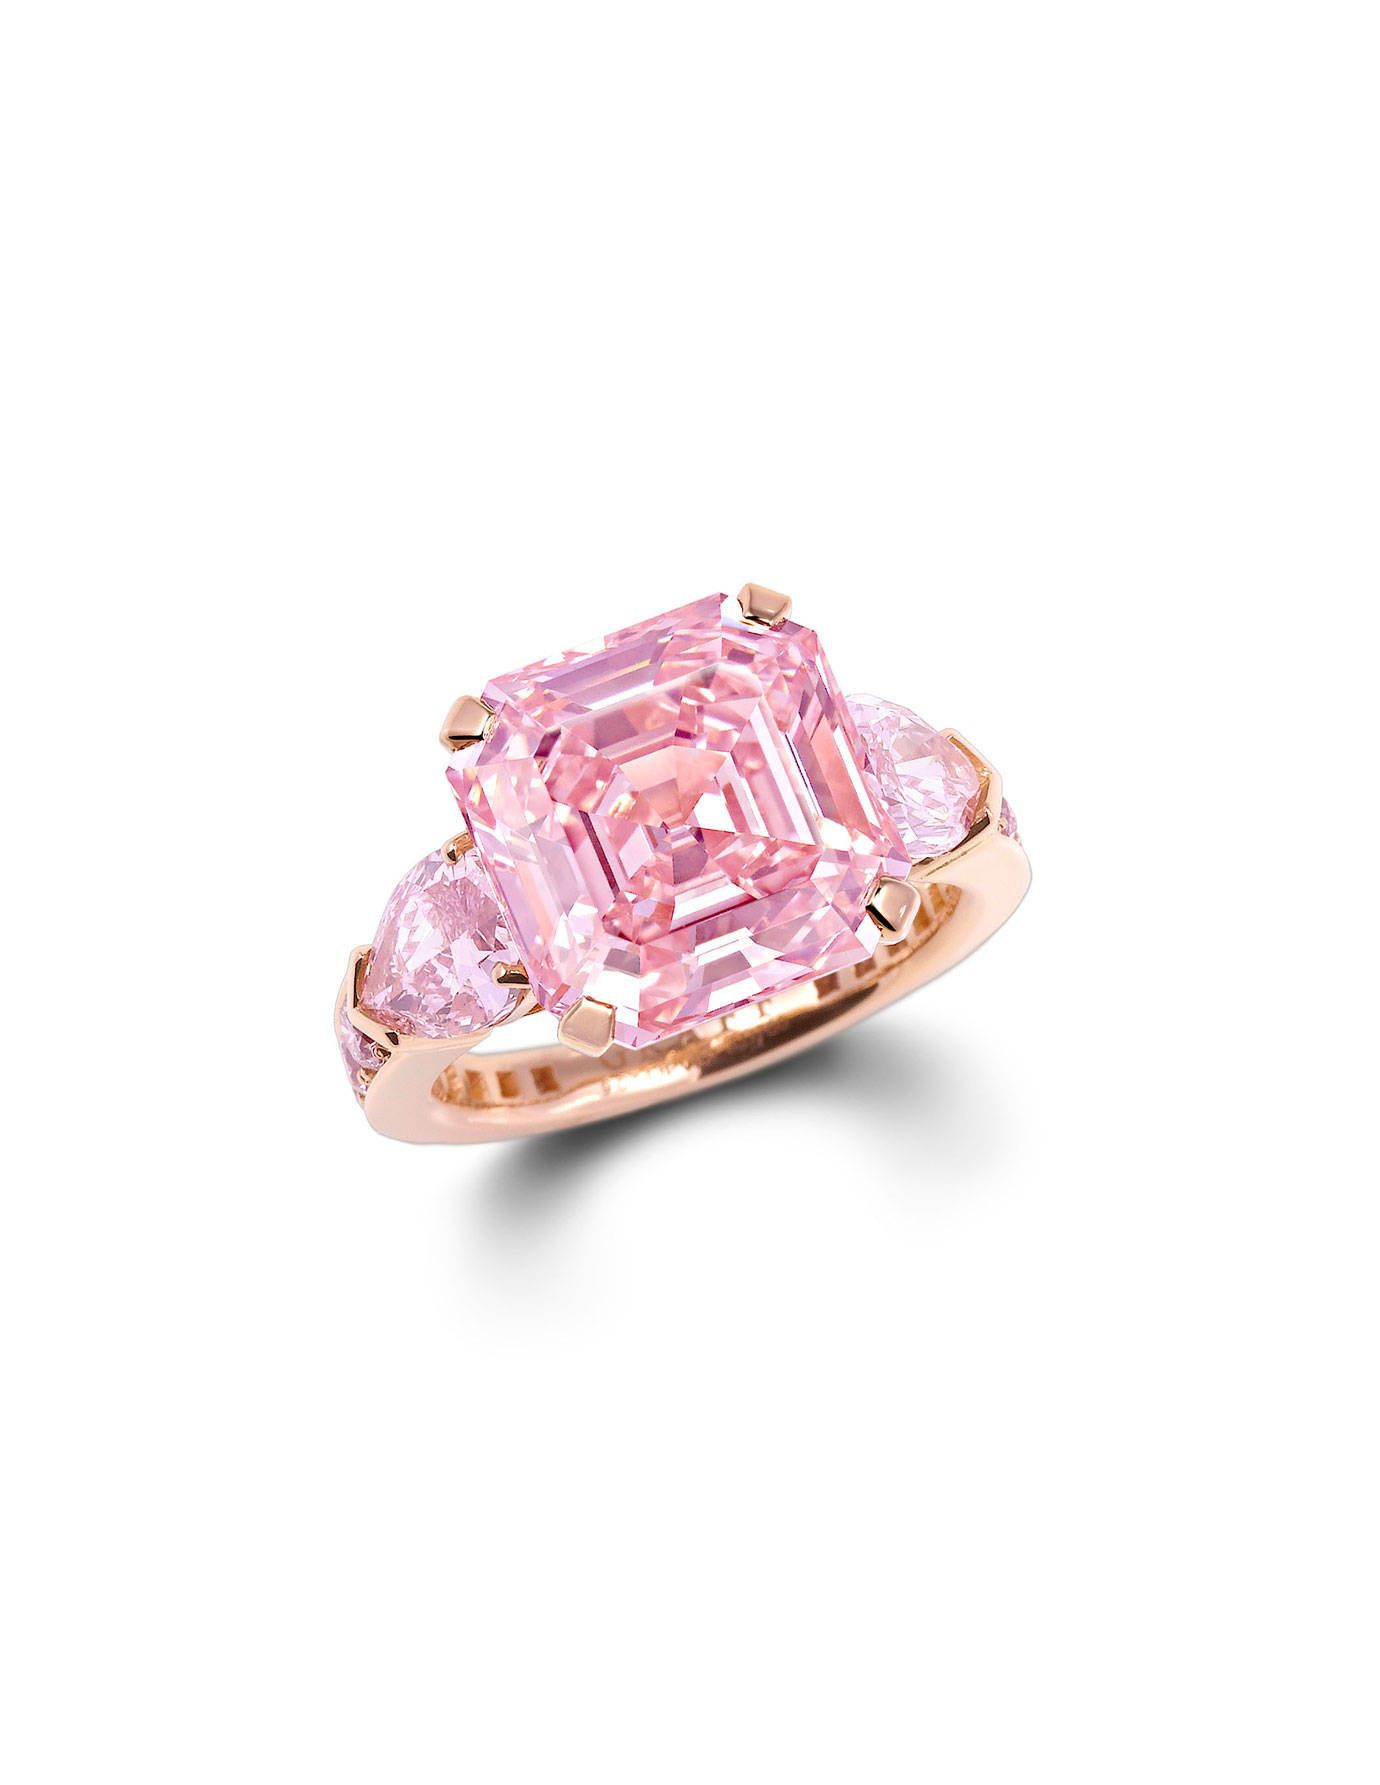 15 Engagement Rings Guaranteed to Get a Yes